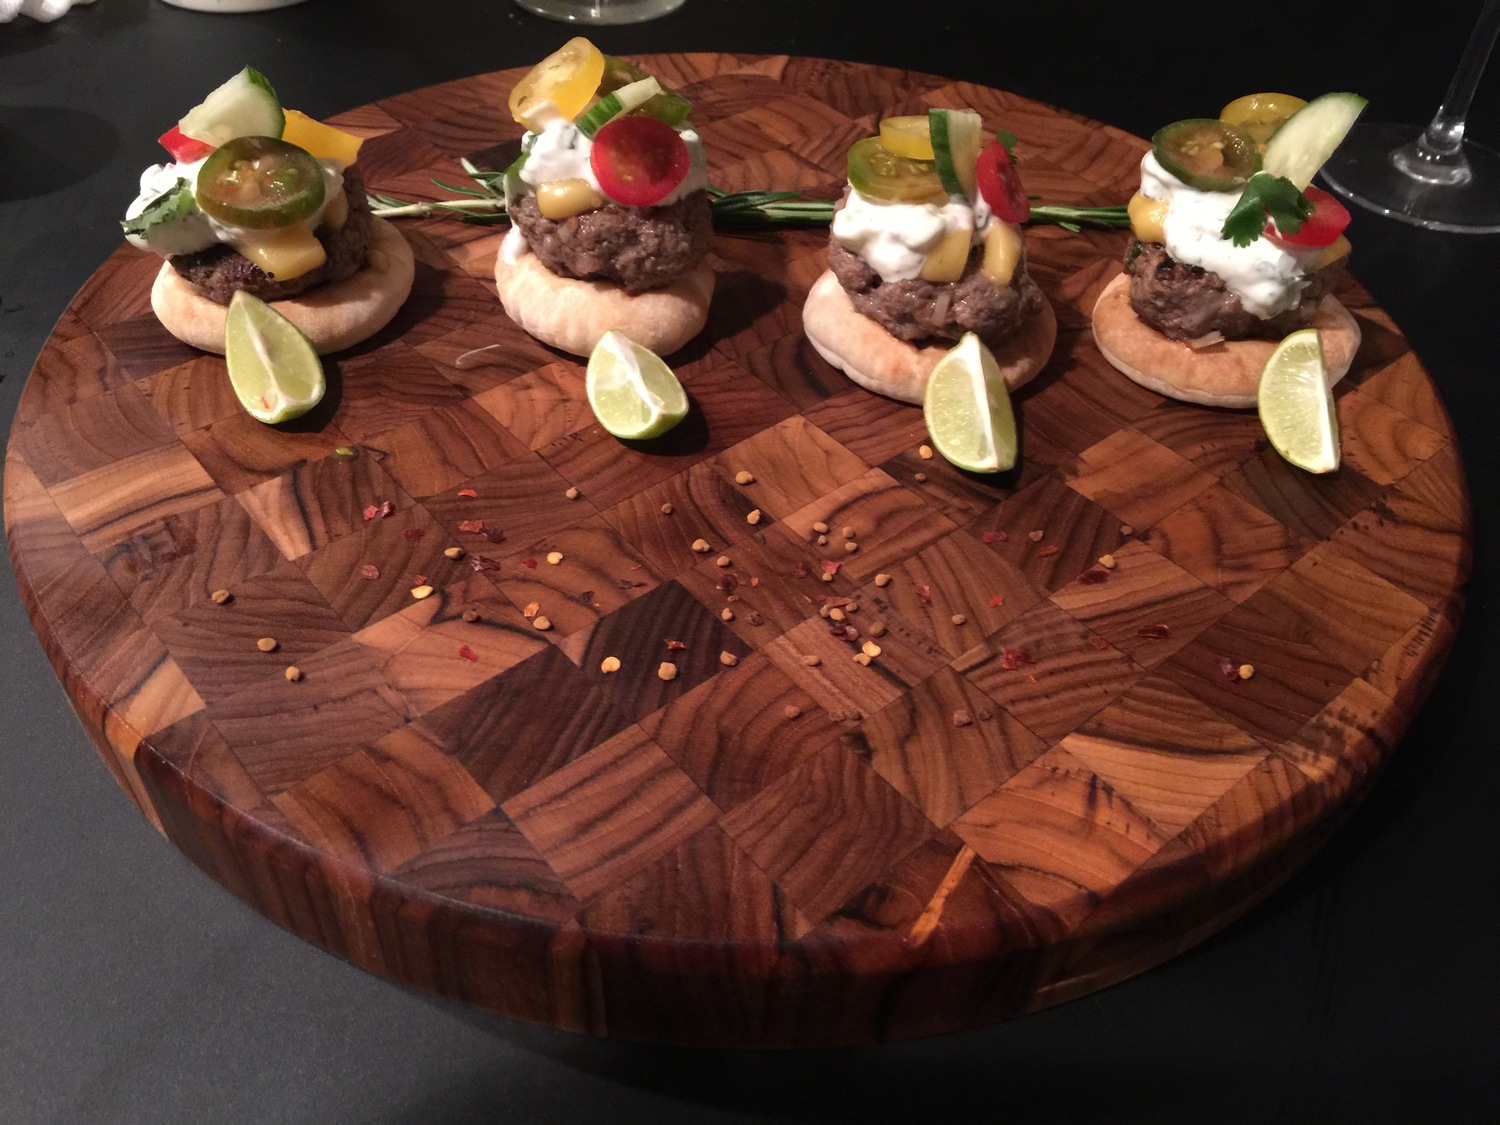 Catering At Chefs Table - Chef's table catering